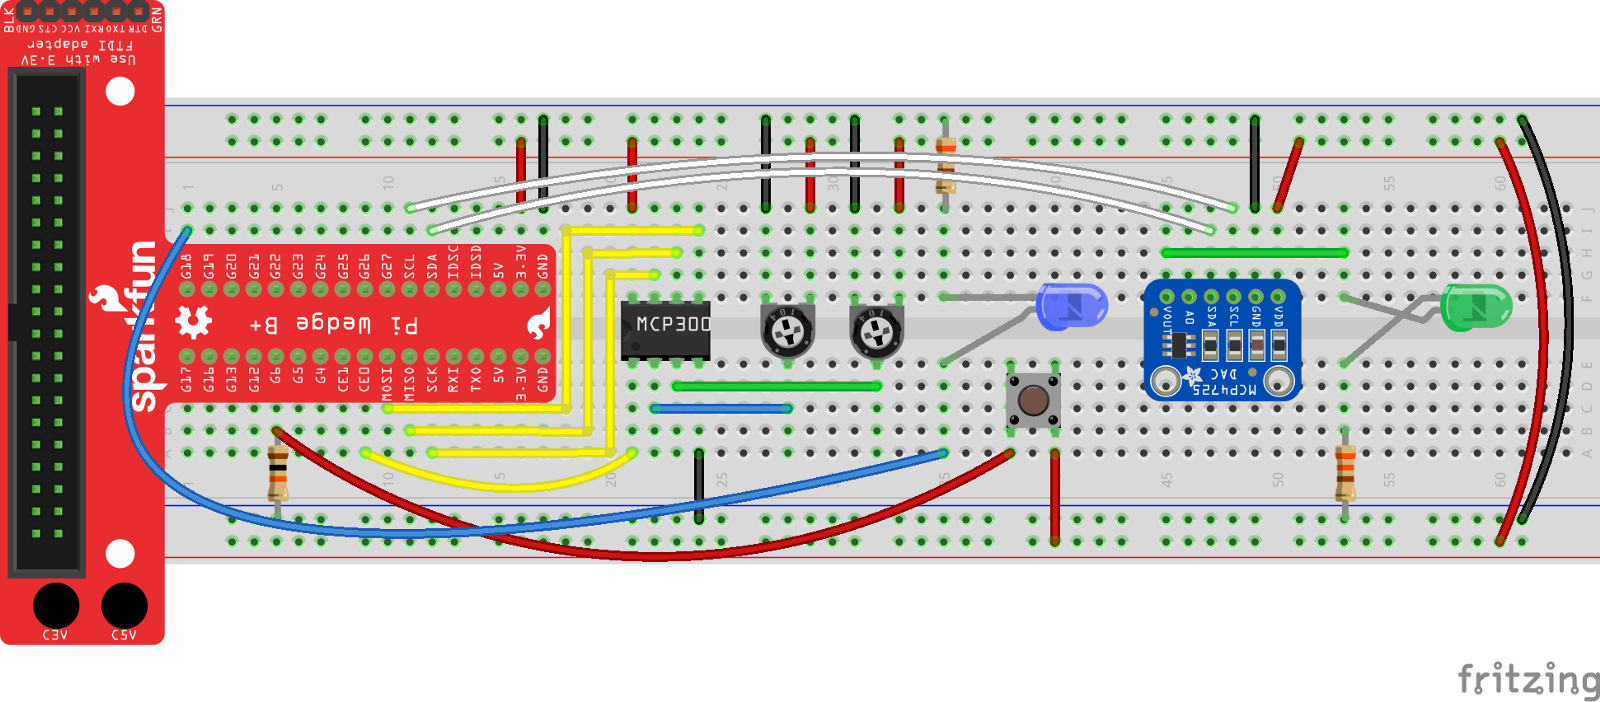 Android Things Analog I O And Pwm Spi Ic Tutorial With The Stable Startstop Oscillator Circuit Diagram Tradeoficcom After This Well Also Have Complete Finished